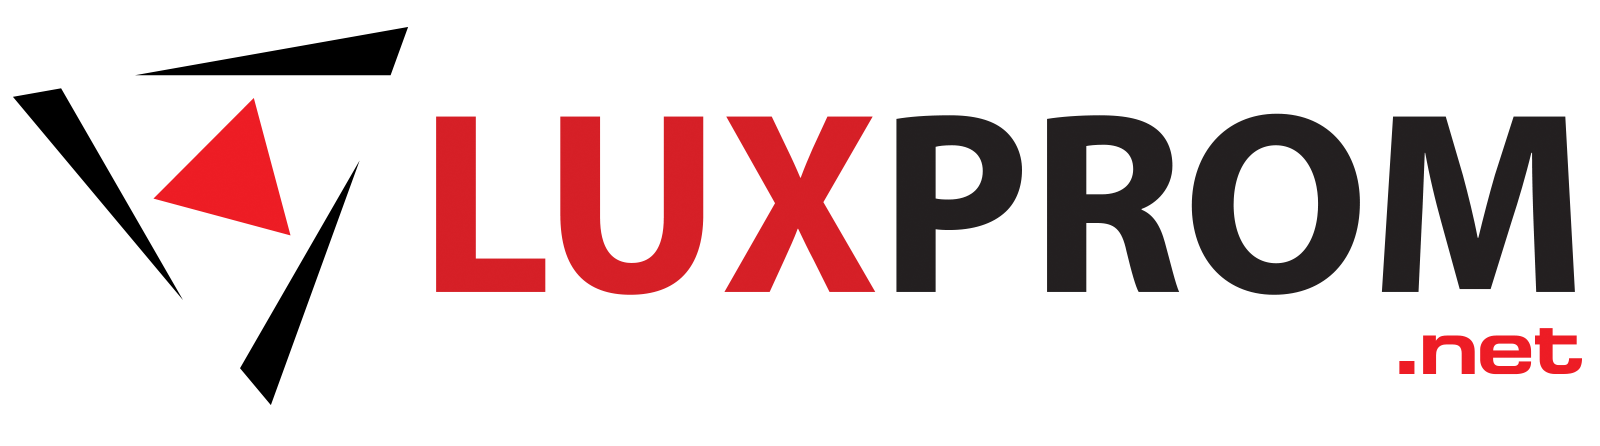 Luxprom.net